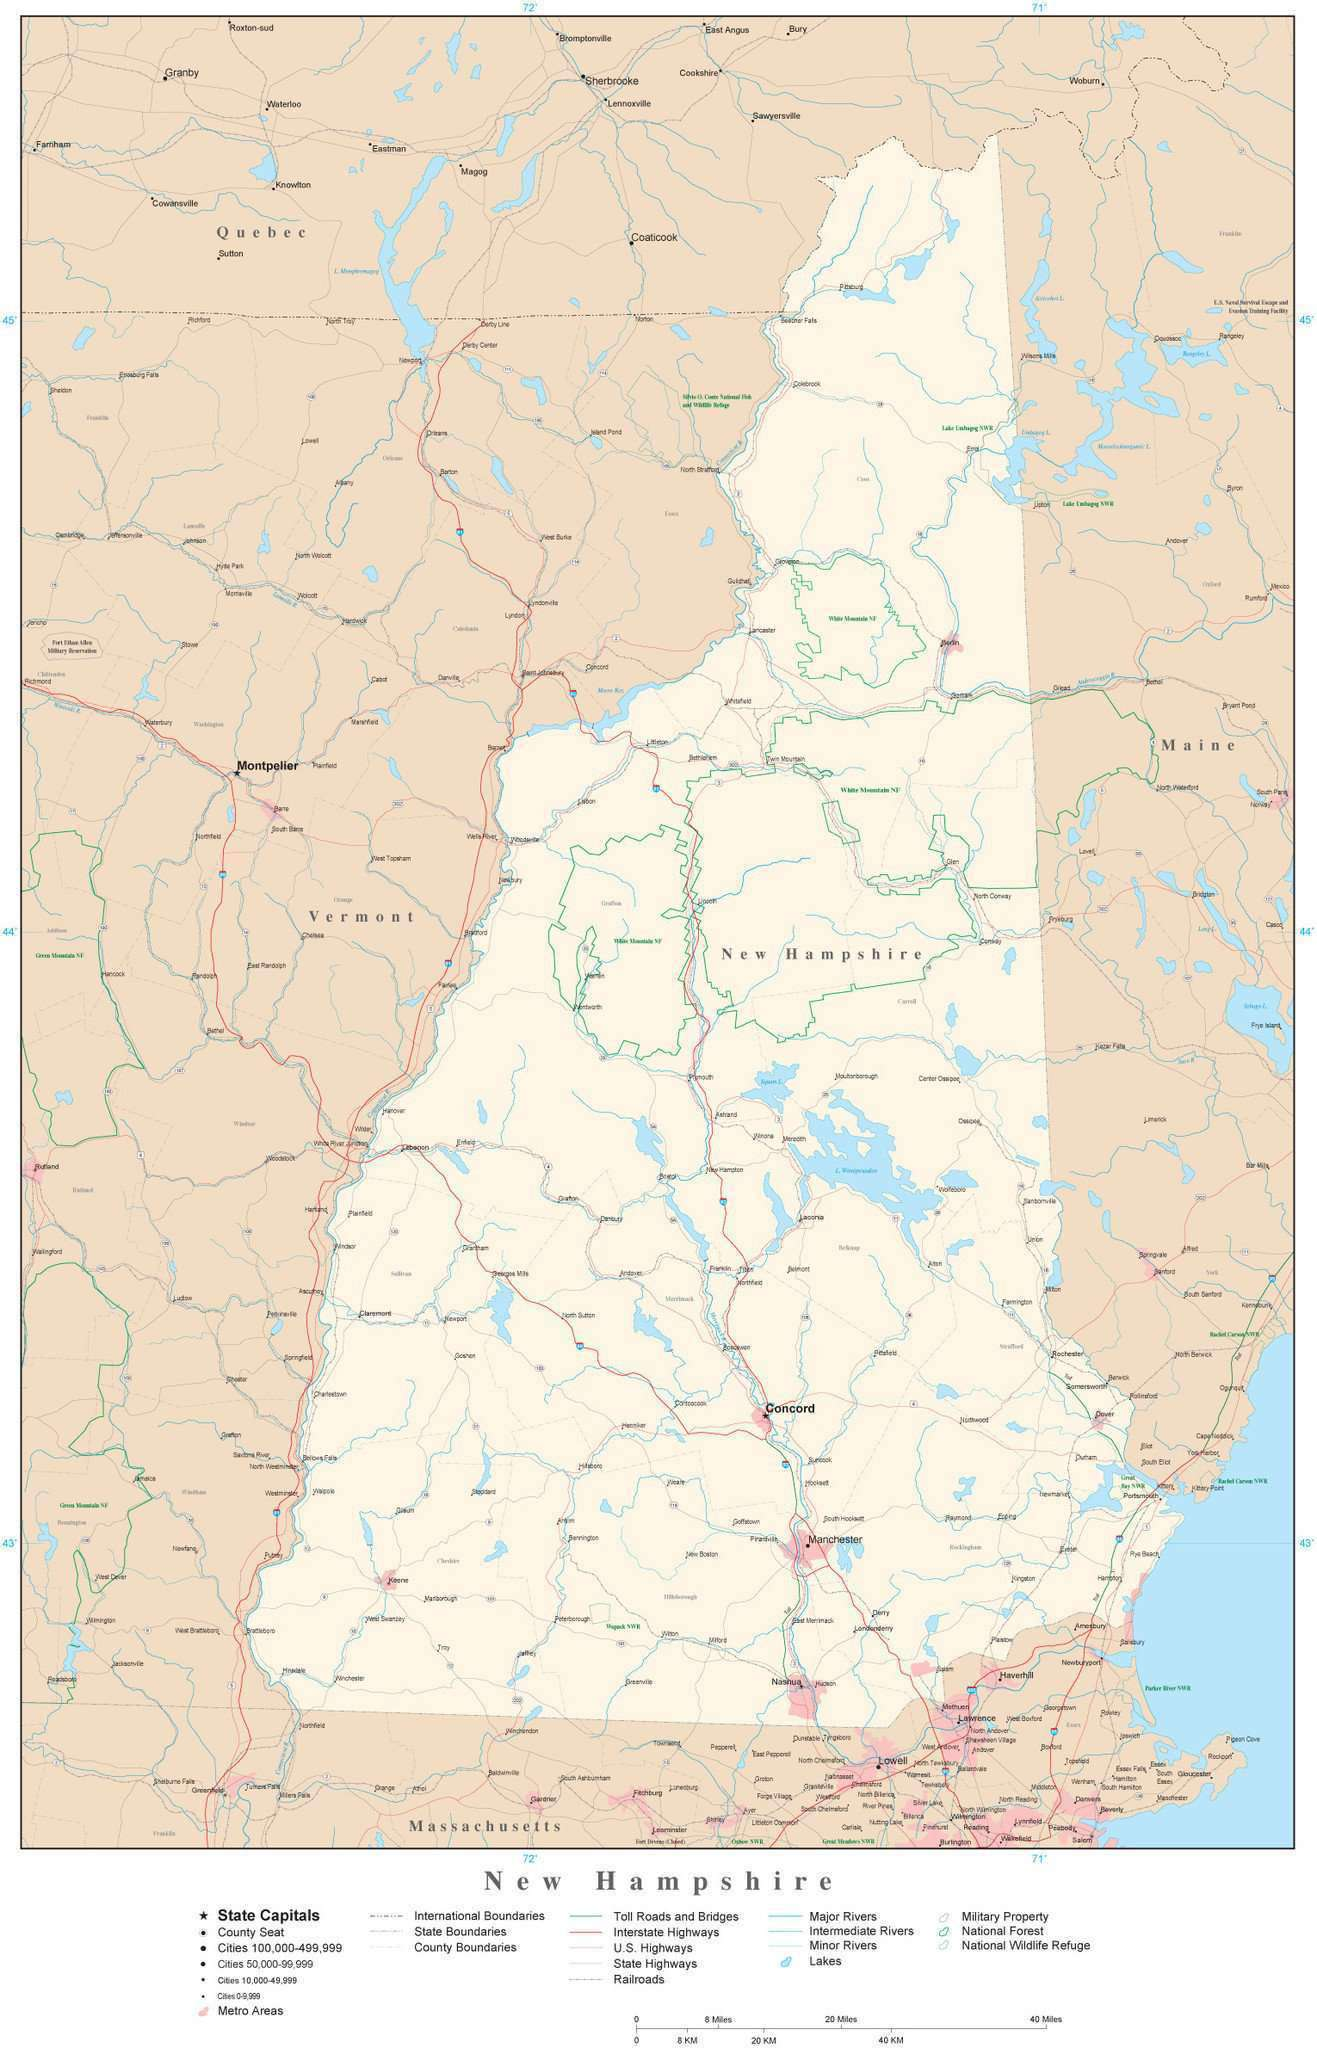 New Hampshire On Map Of Usa.New Hampshire Detailed Map In Adobe Illustrator Vector Format